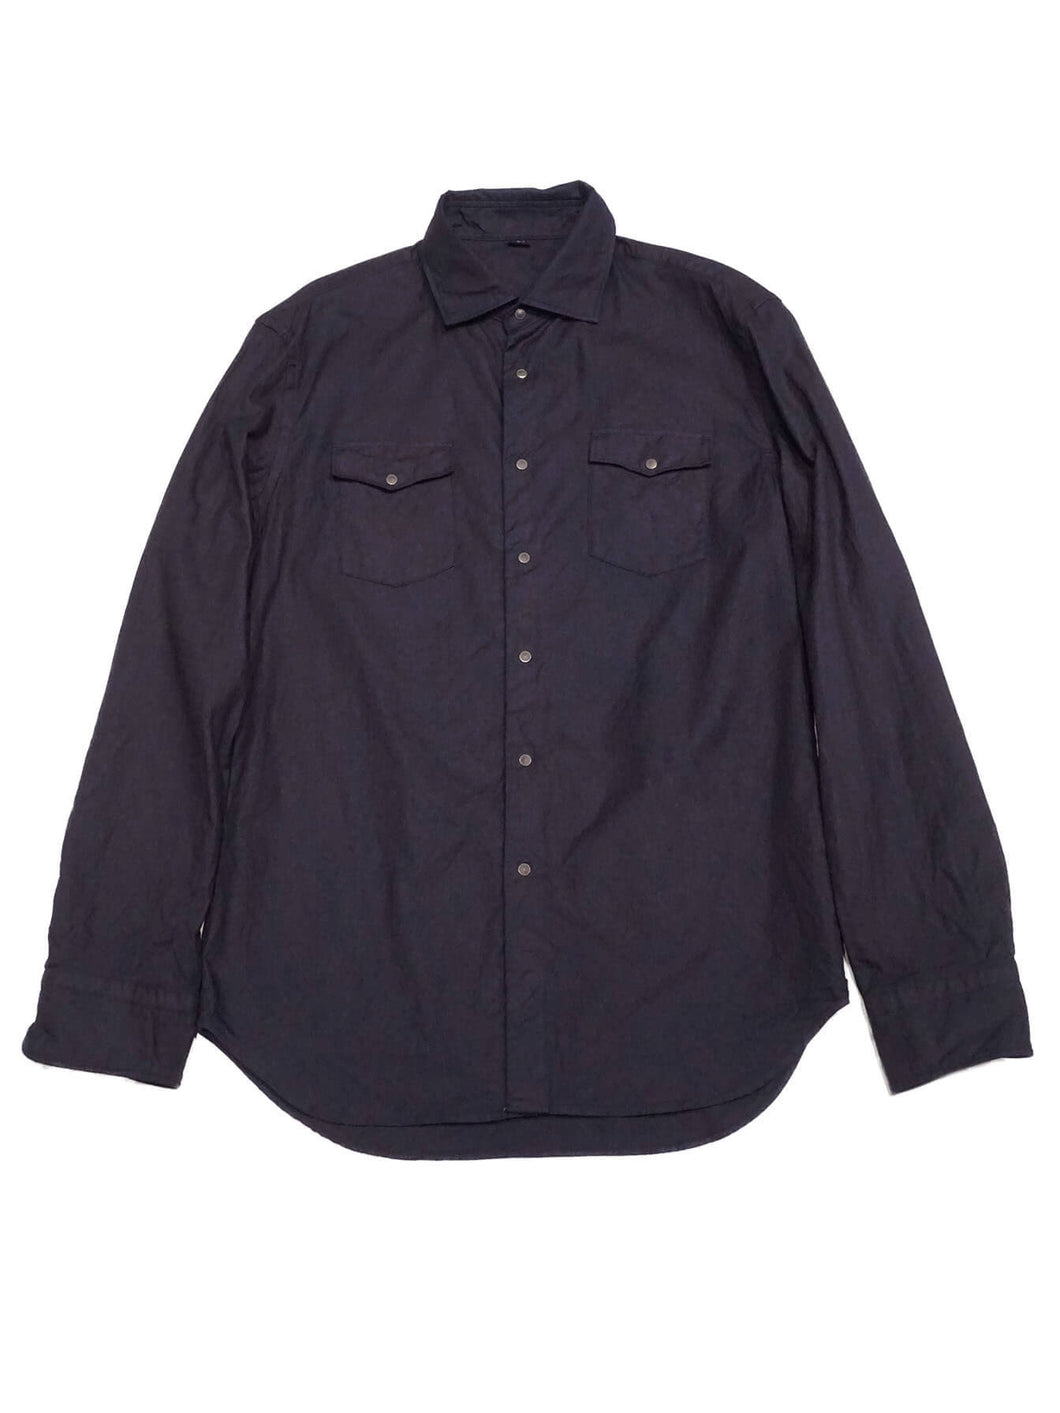 Indigo Zimba Cotton Eastern Shirt in indigo